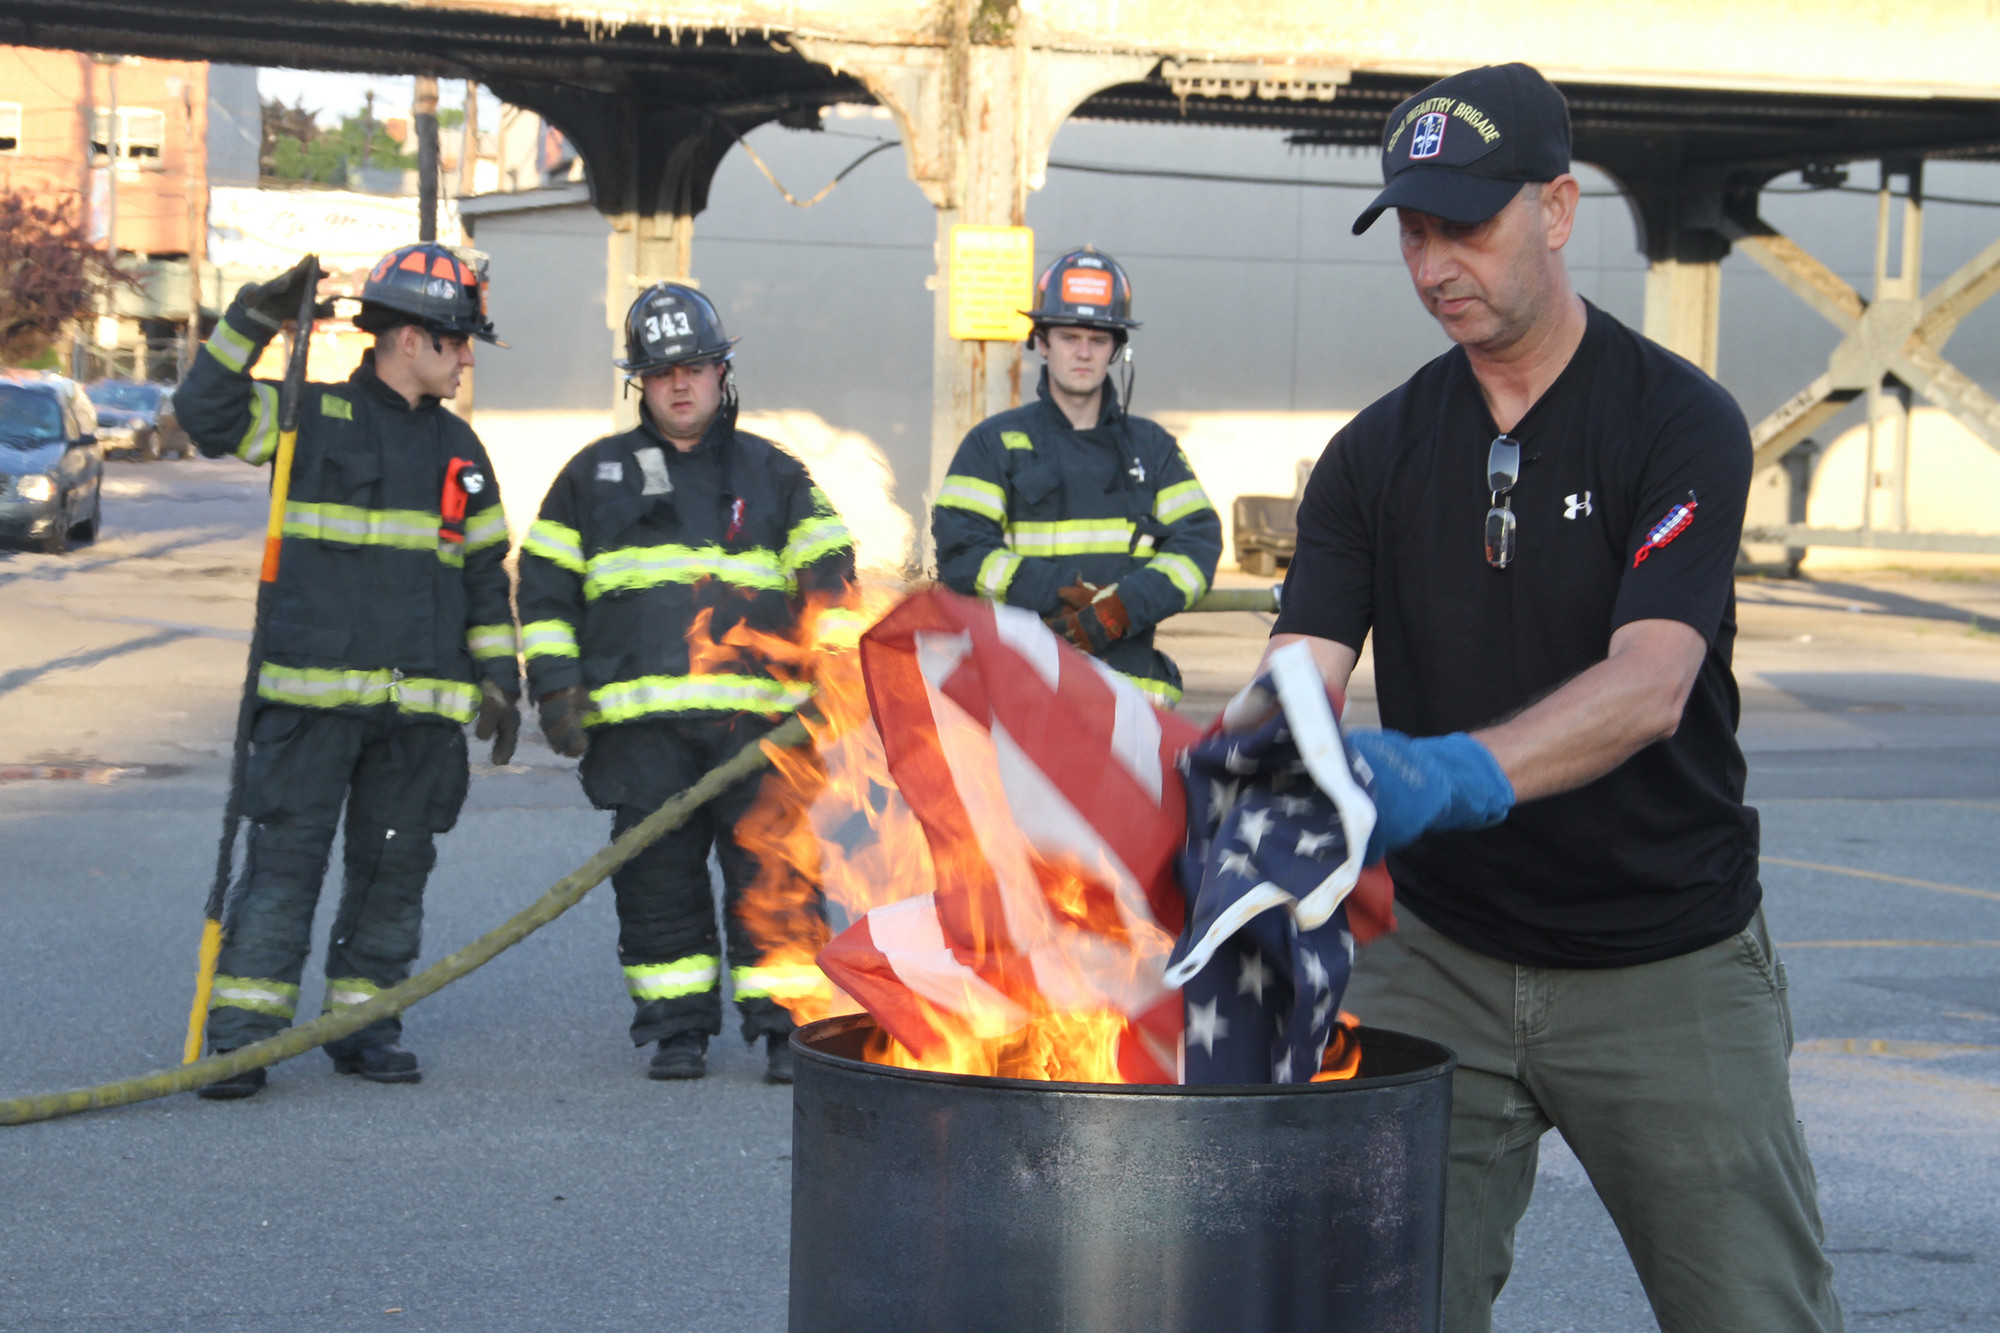 Eddie Nachreiner, the sergeant at arms for American Legion Post 854, burned worn American flags last Friday evening to mark Flag Day. Members of the Valley Stream Fire Department�s Engine Company No. 3 stood by.